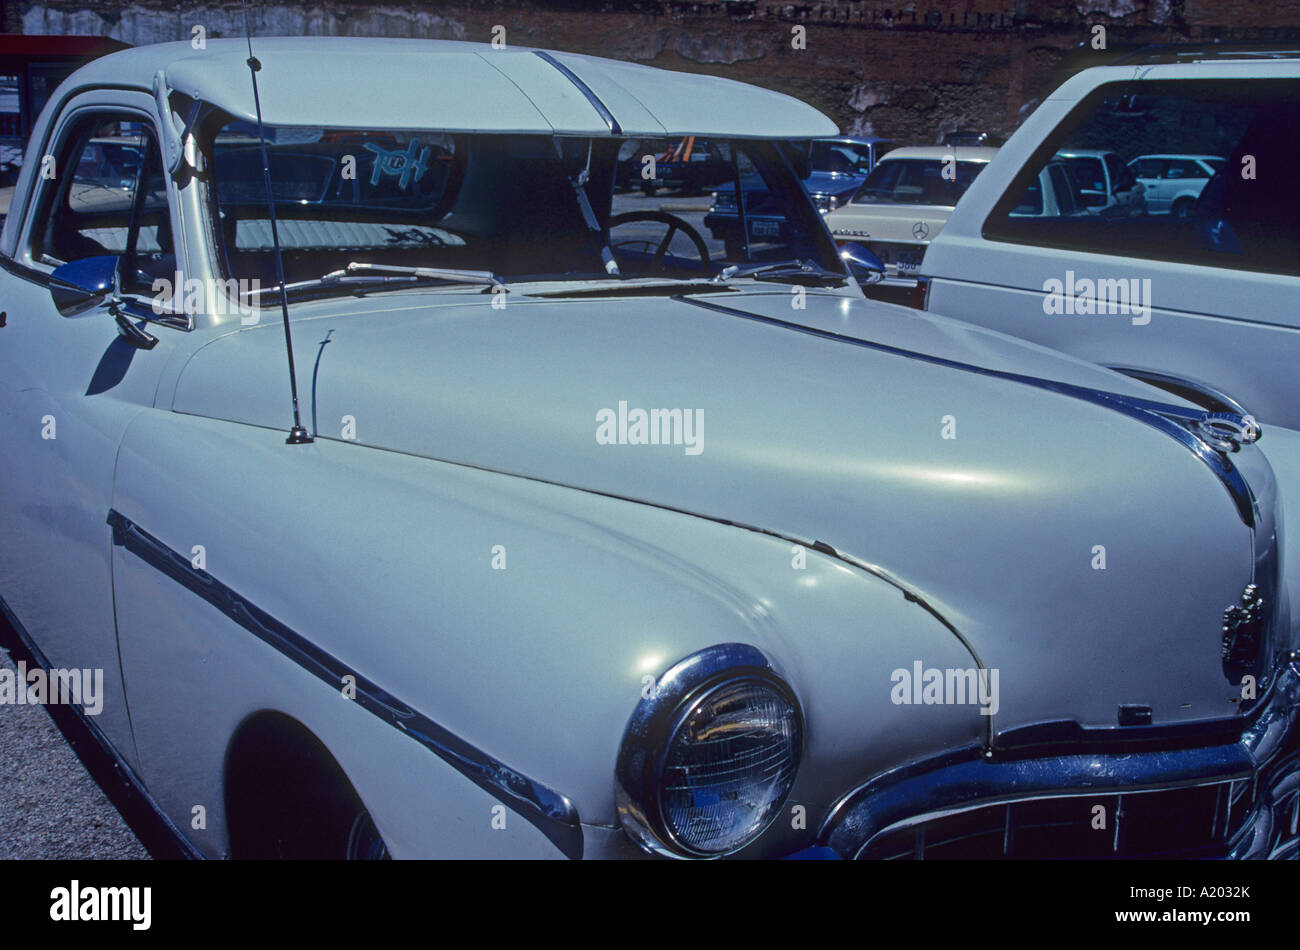 An old car in Los Angeles U.S.A. North America Stock Photo: 10362378 ...